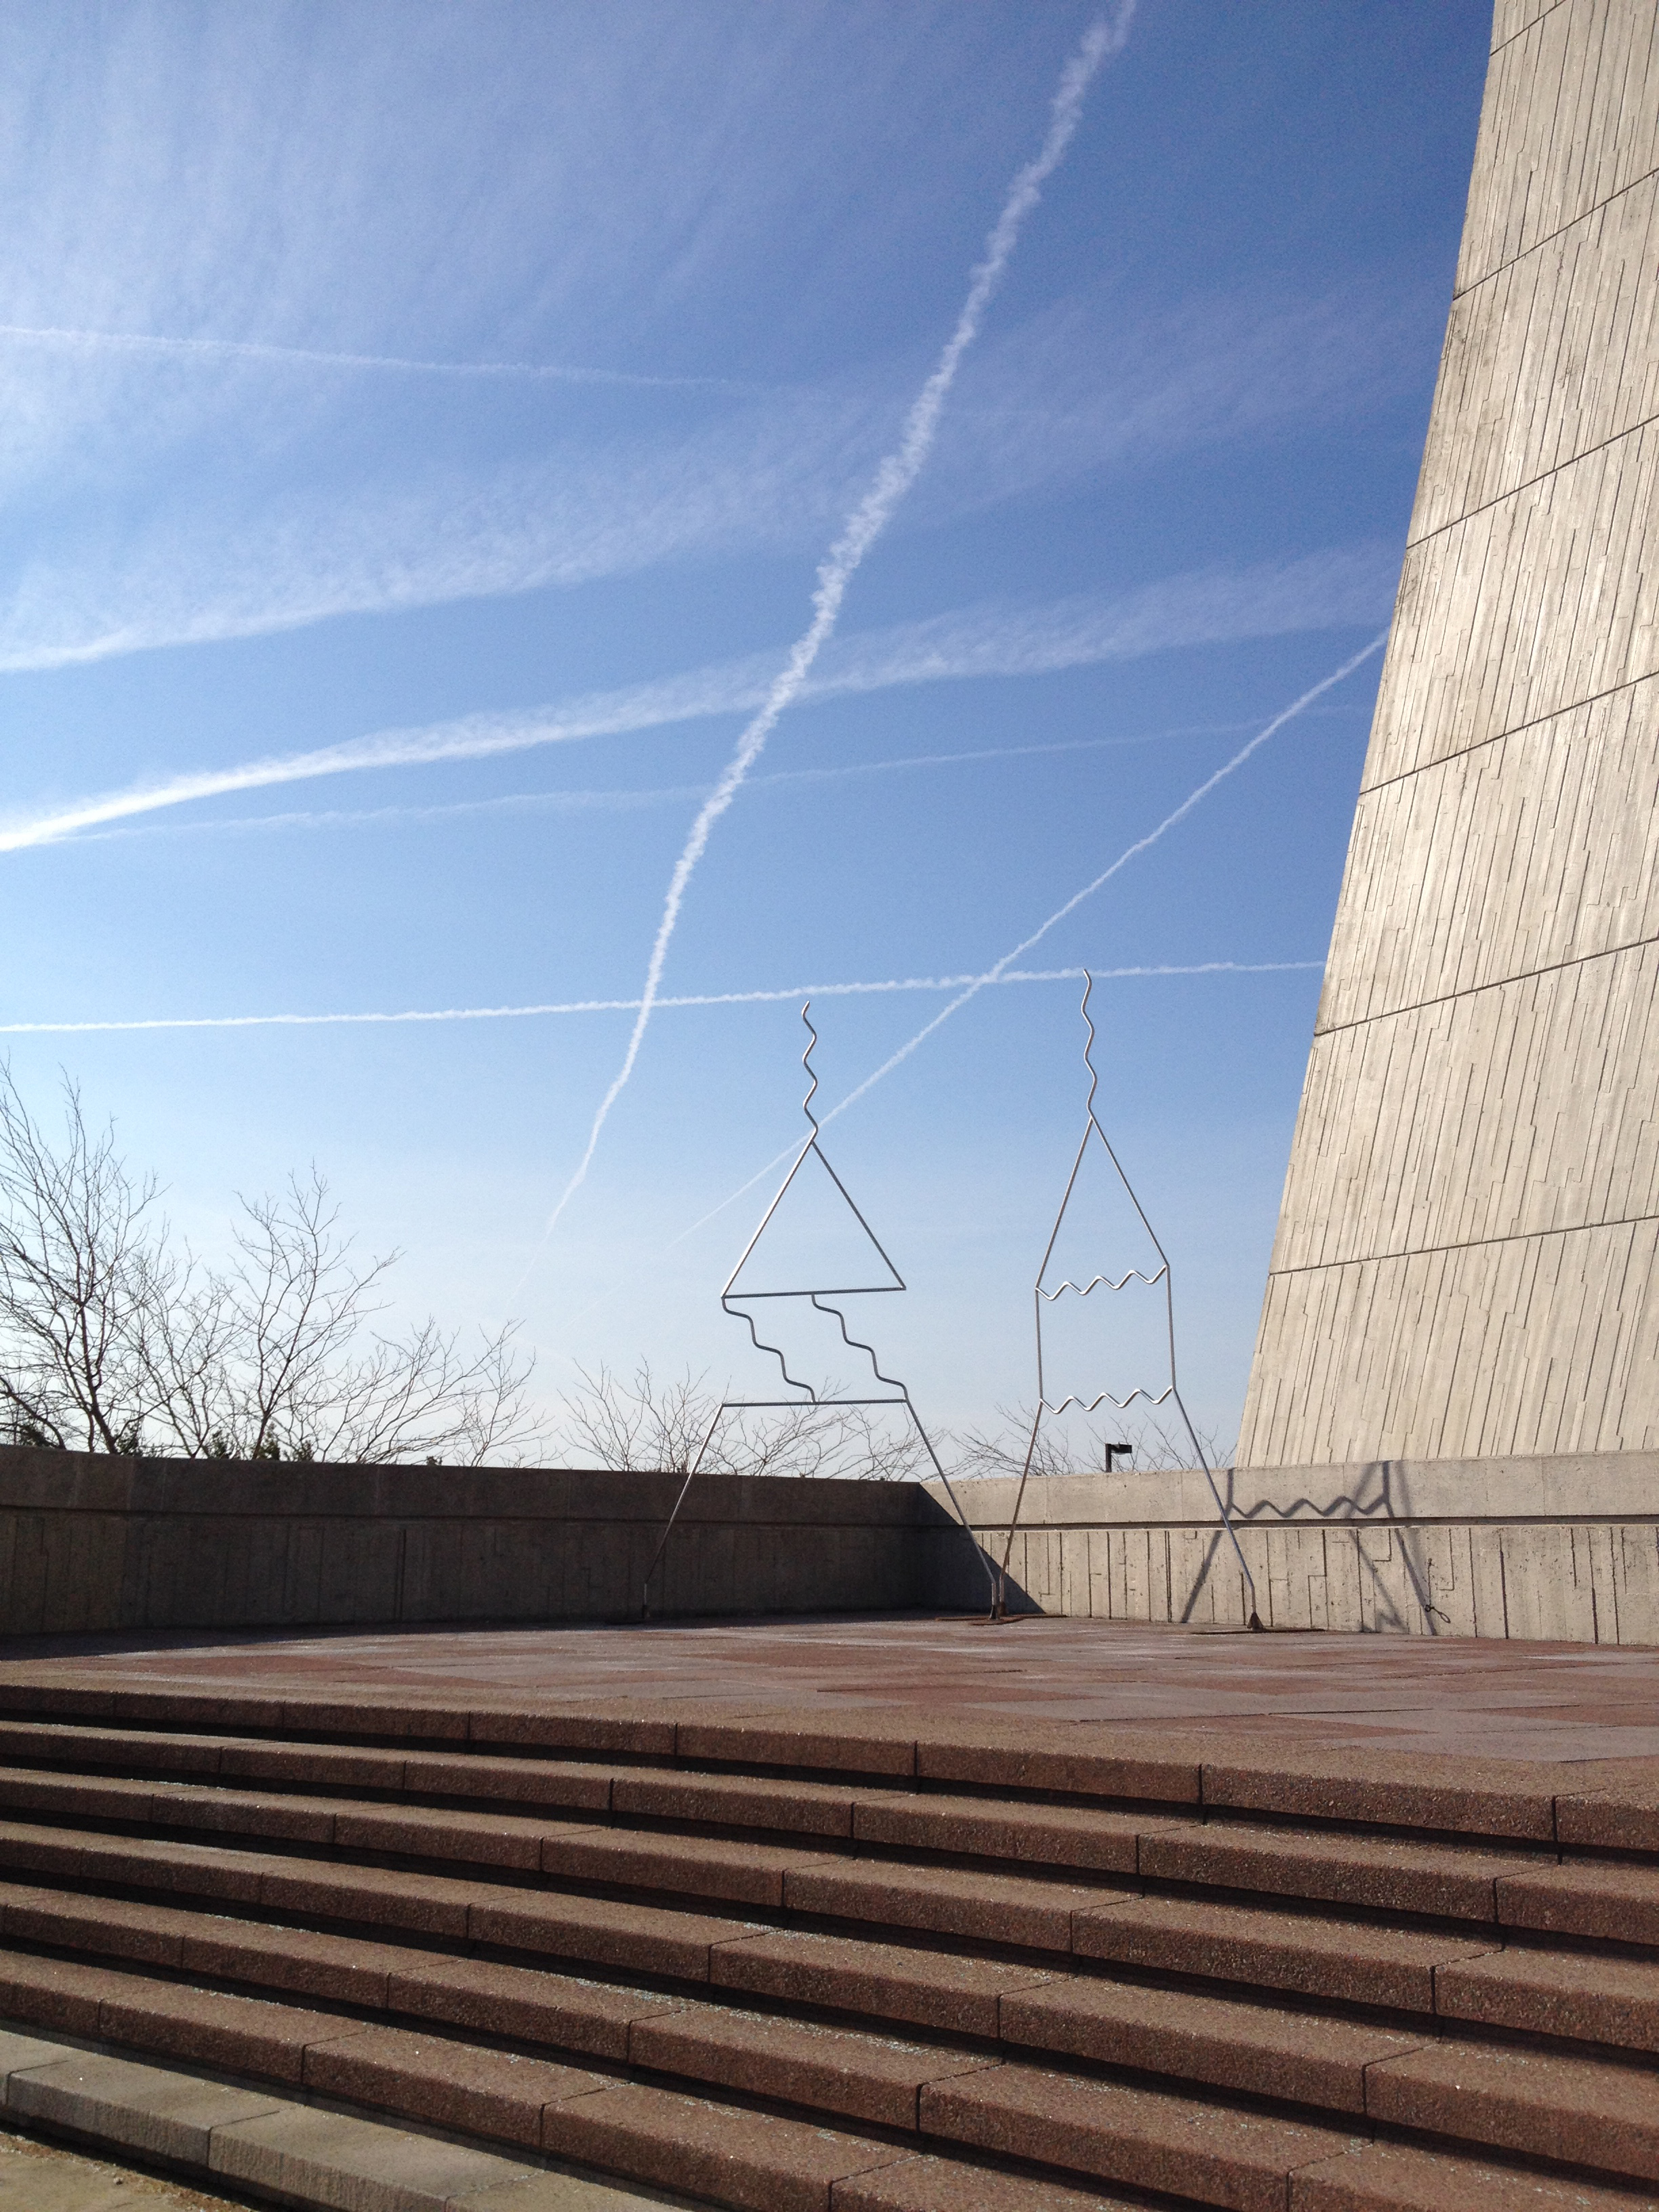 The lines formed by contrails echo those of Edward Tufte's sculptures of Feynman diagrams. Photo: Amanda Solliday